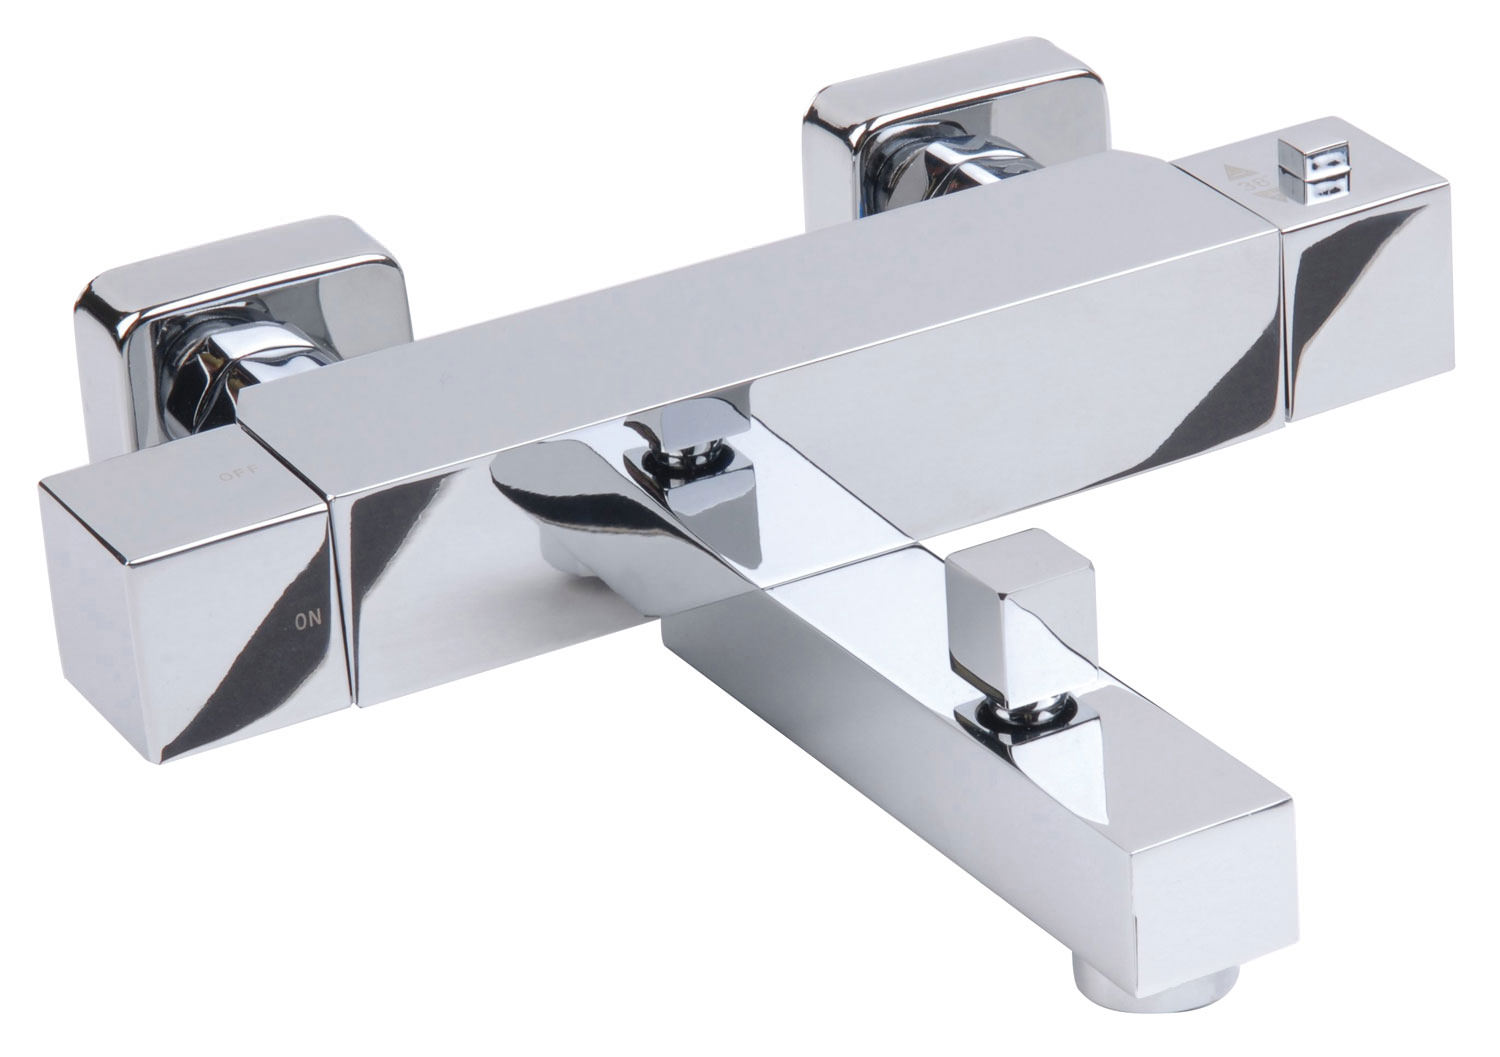 Mayfair Kubo Chrome Wall Mounted Bath Shower Mixer Tap